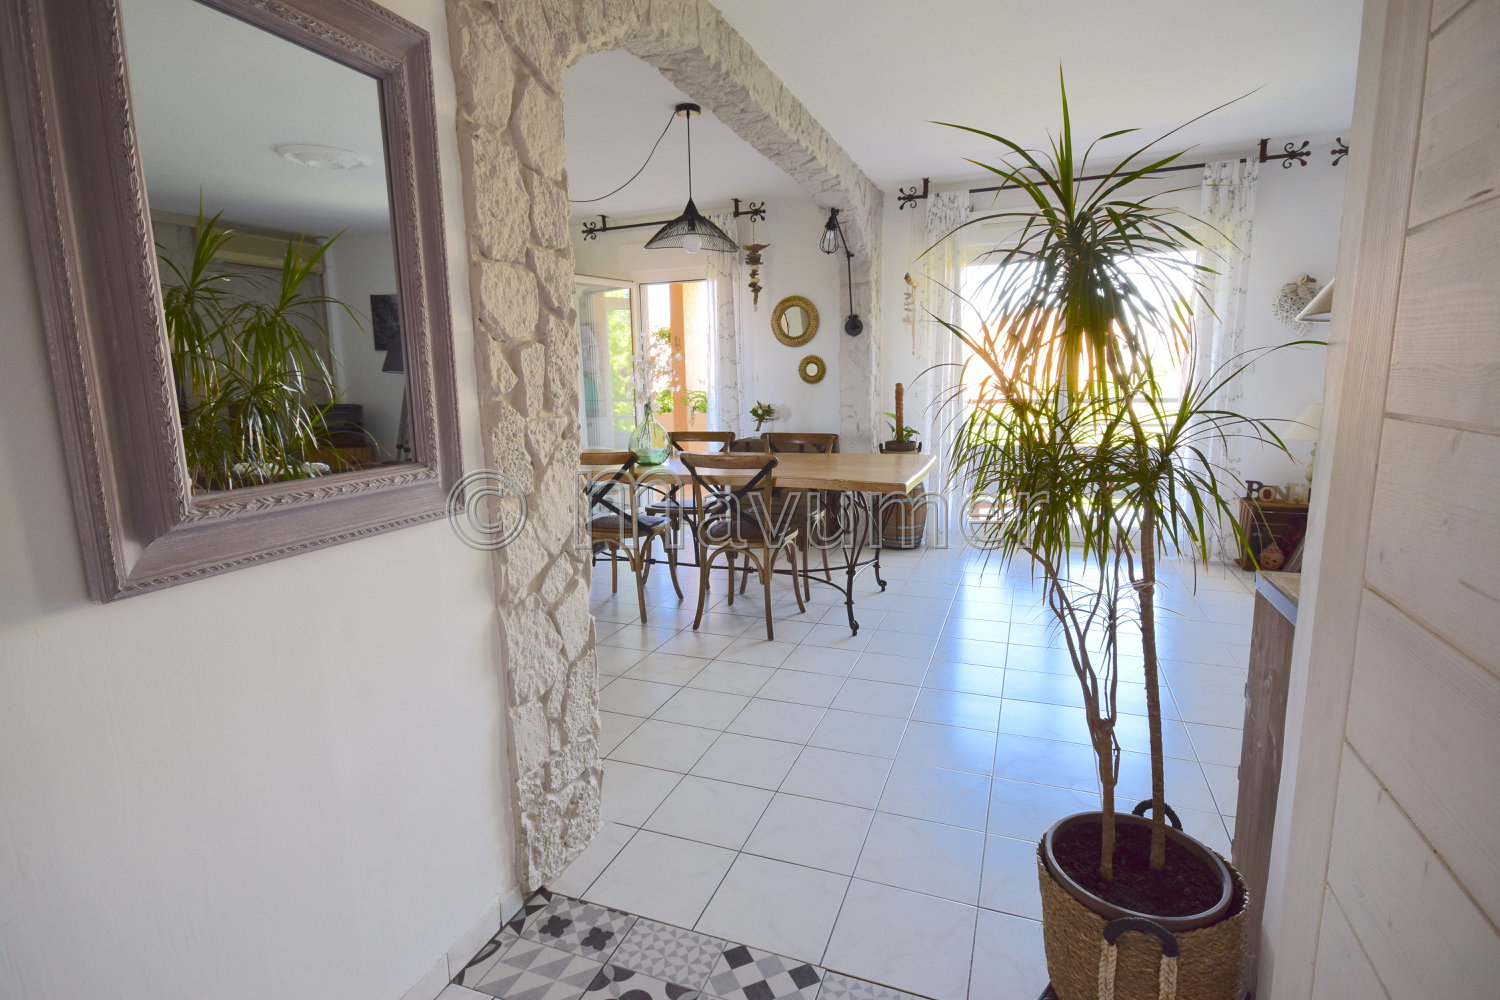 APPARTEMENT T4 TERRASSES CHATEAU GOMBERT MARSEILLE 13013